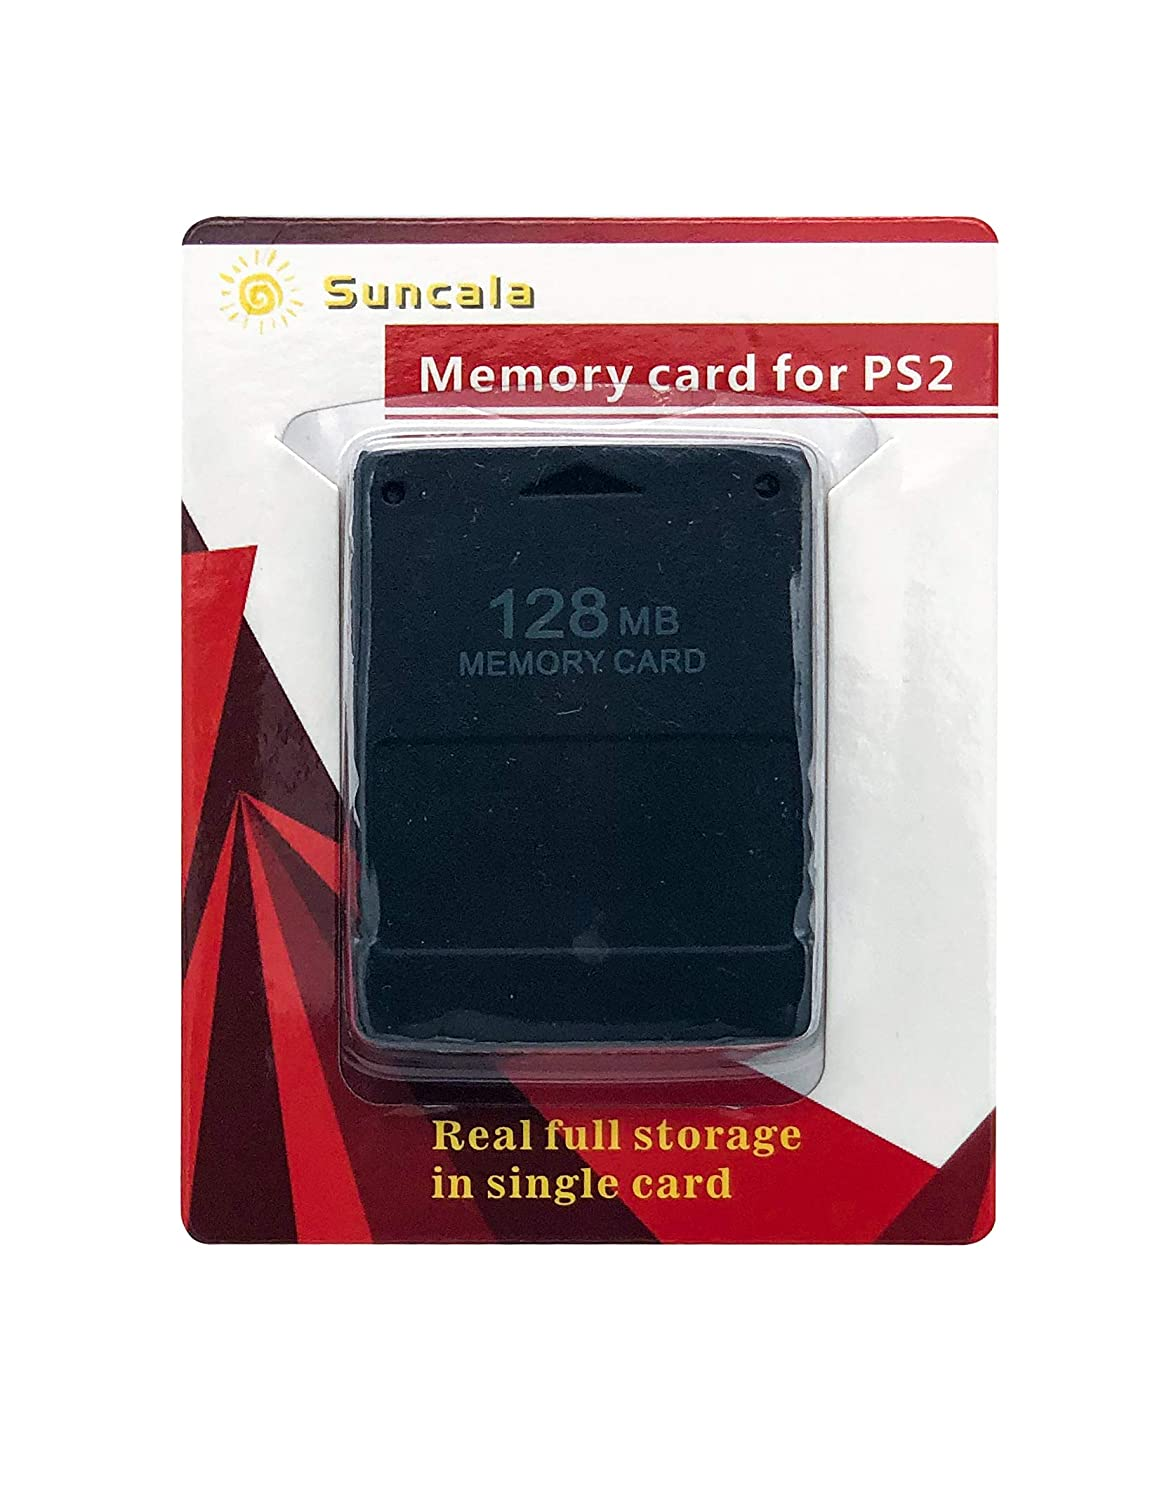 Suncala 128MB Memory Card for Playstation 2, High Speed Memory Card for Sony PS2